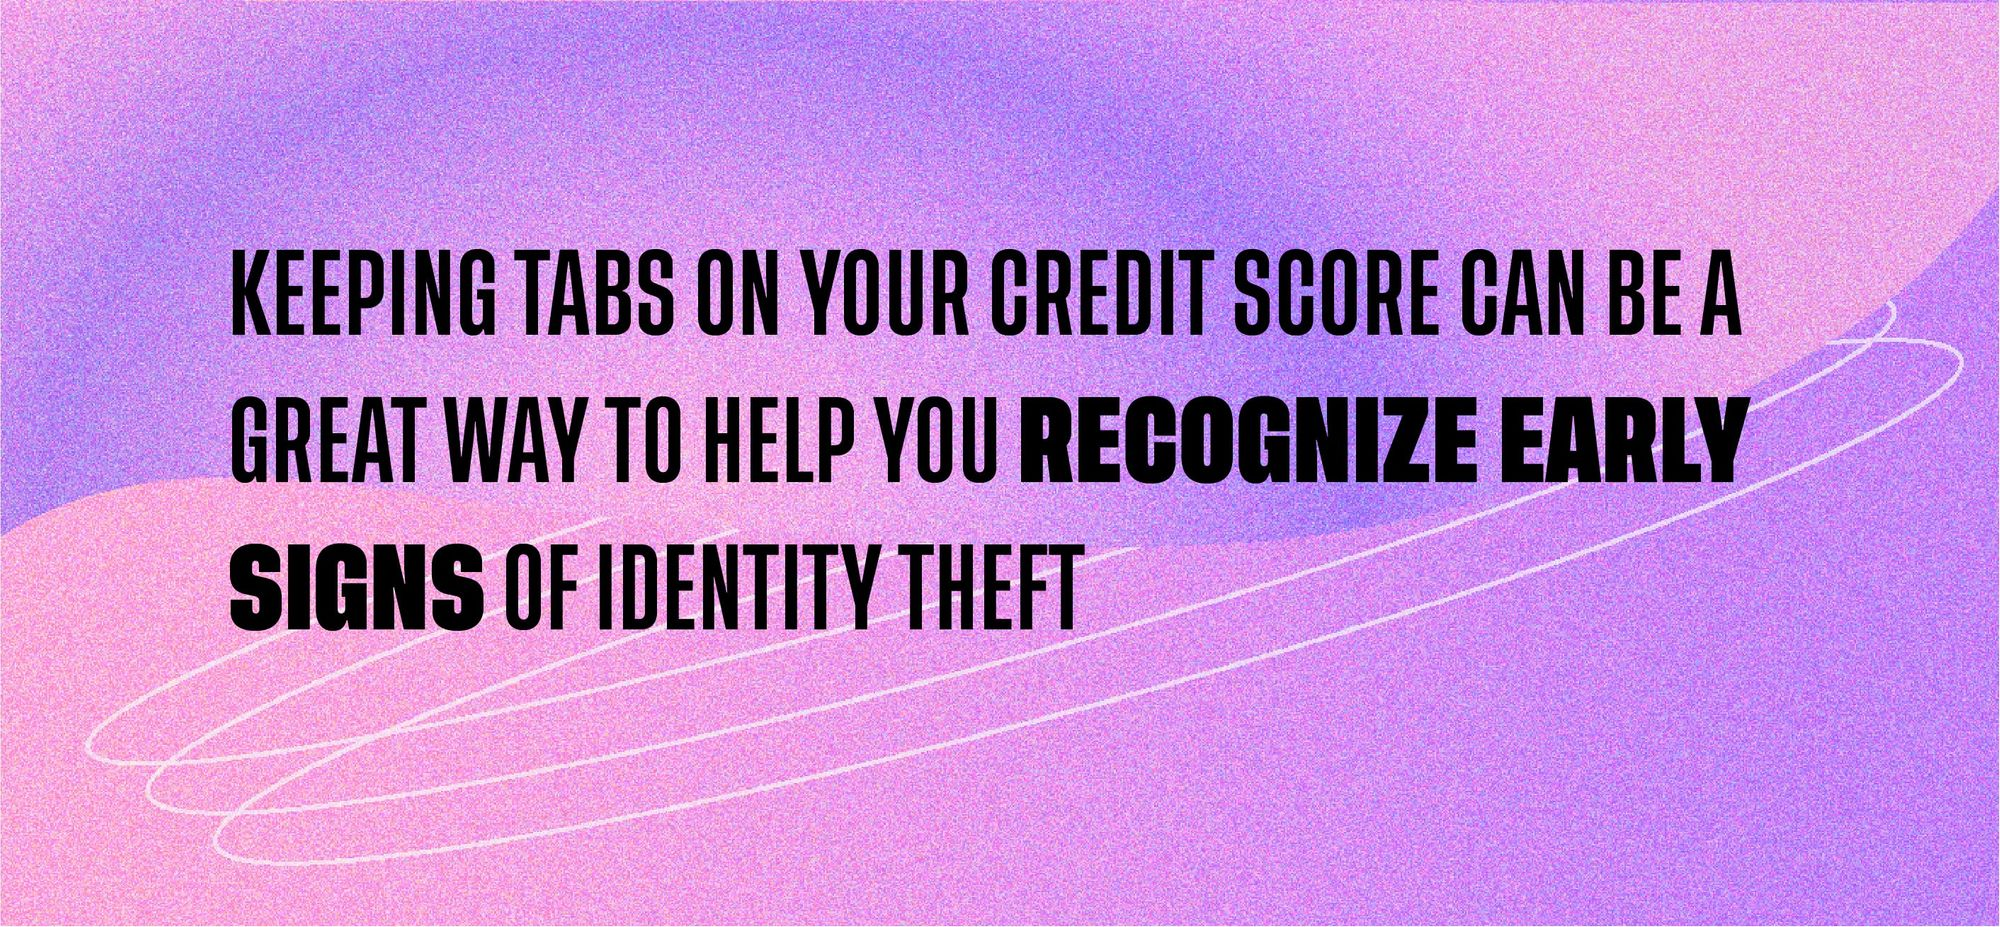 keeping tabs on your credit score can be a great way to help you recognize early signs of identity theft